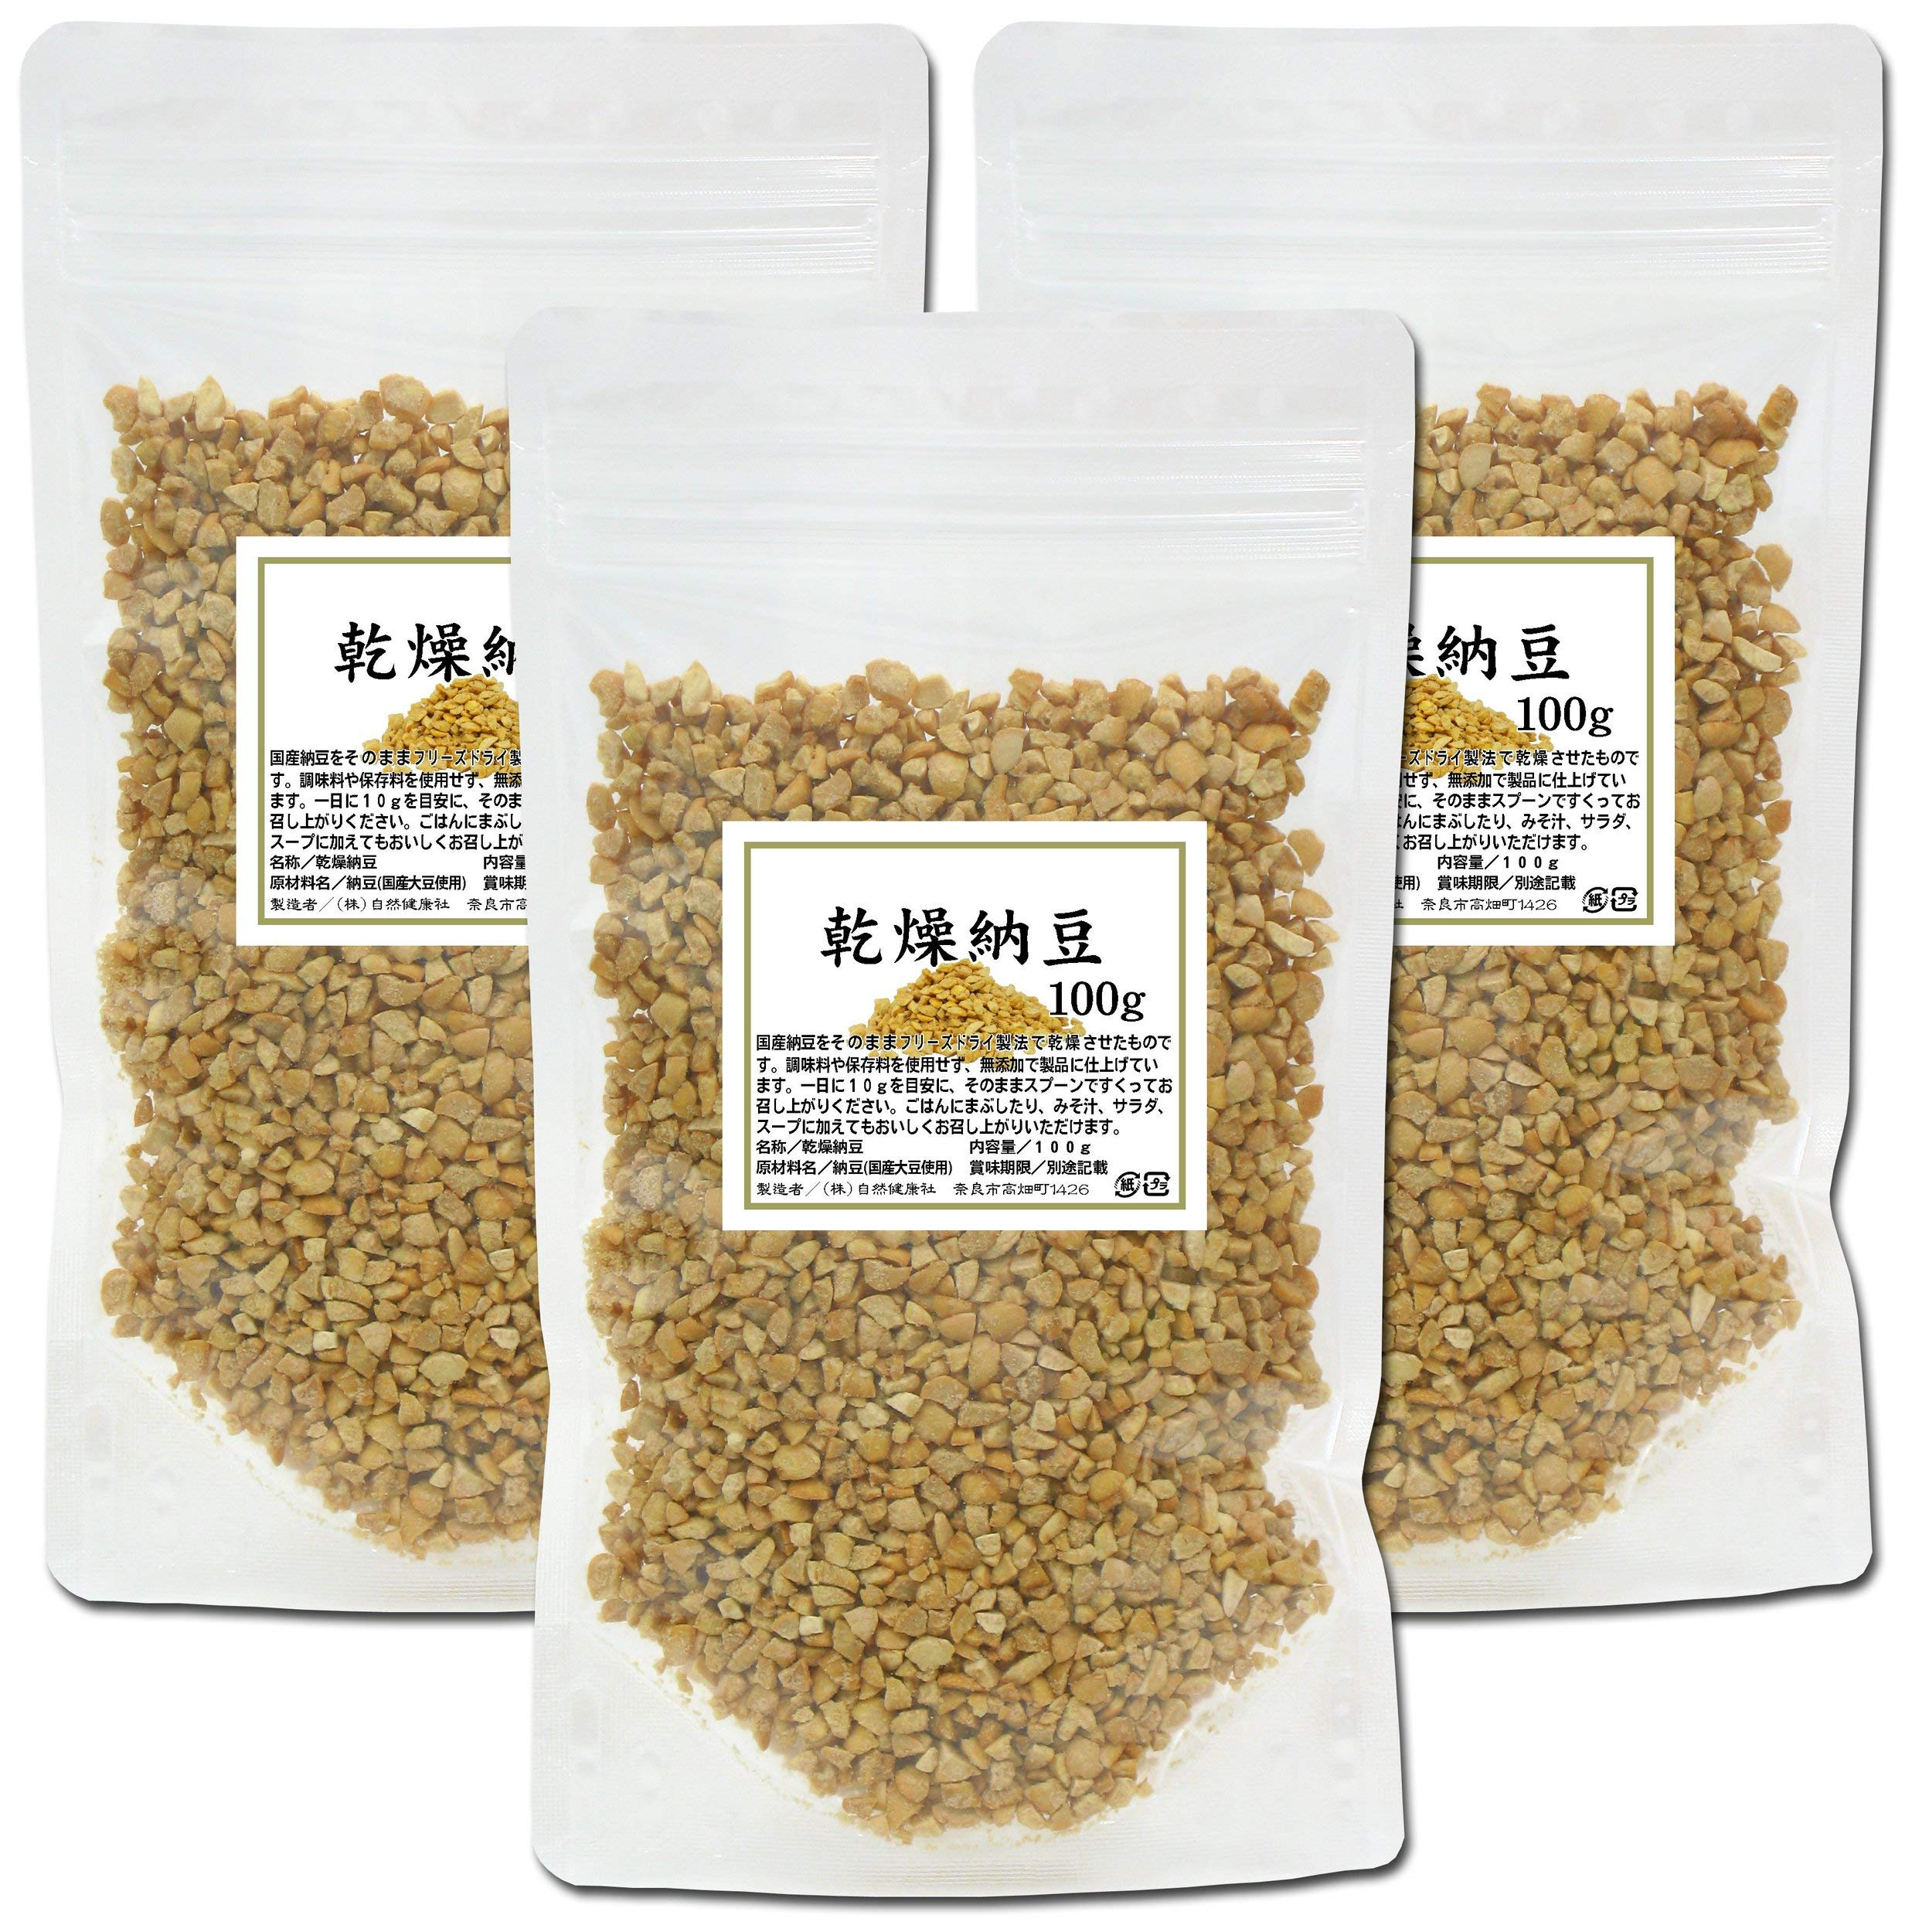 Natural Health Company Dried natto 100g x 3 bags Bag with chuck included [Japan Import]